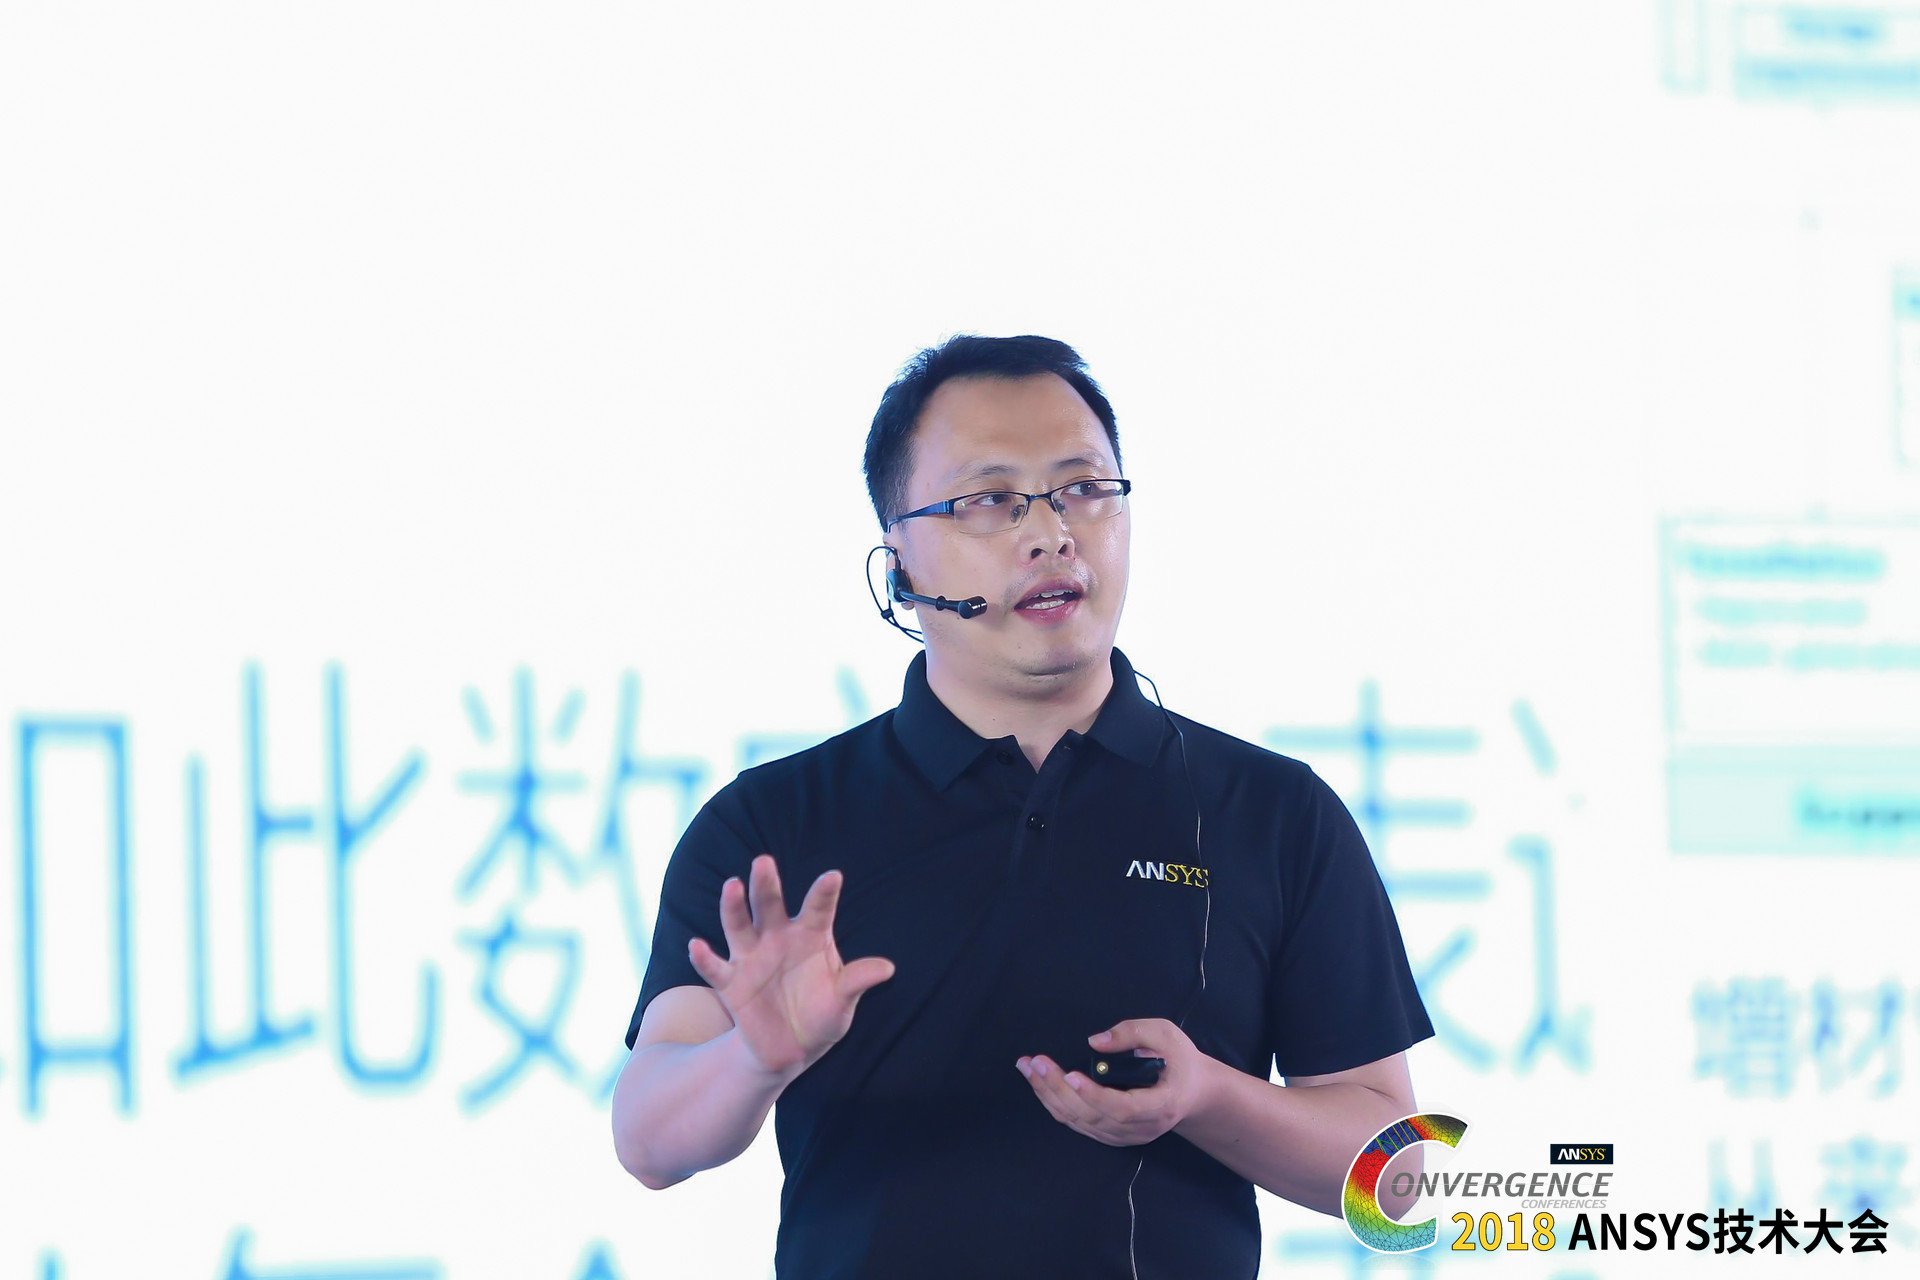 ANSYS 2018 Conference_Bao Gangqiang